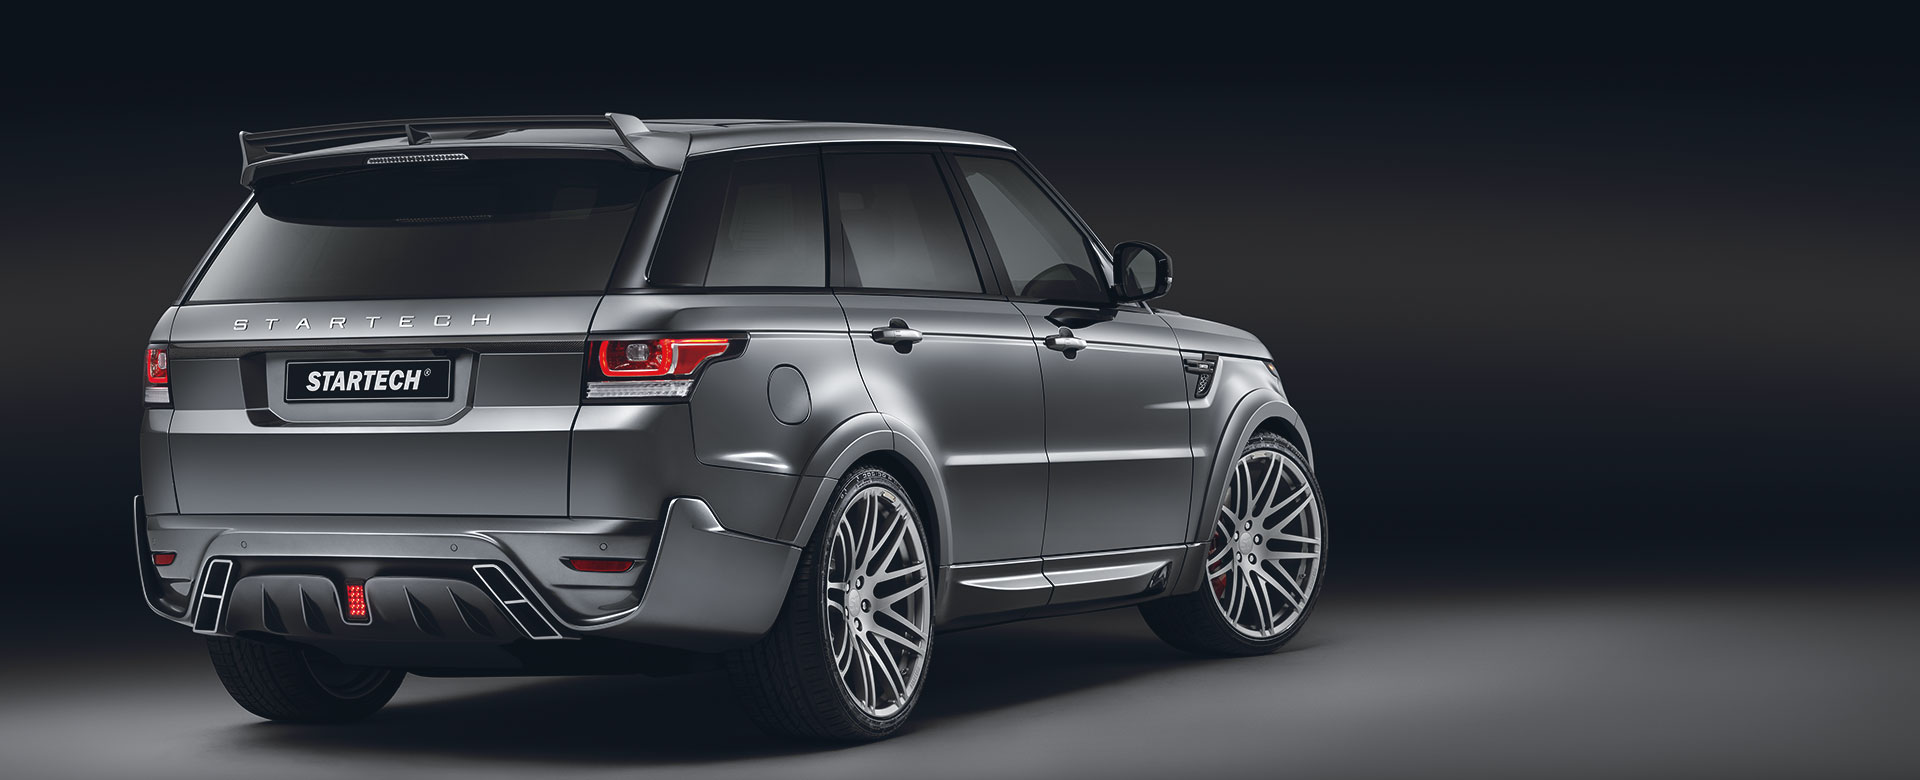 range rover sport 2014 tuning startech startech refinement. Black Bedroom Furniture Sets. Home Design Ideas